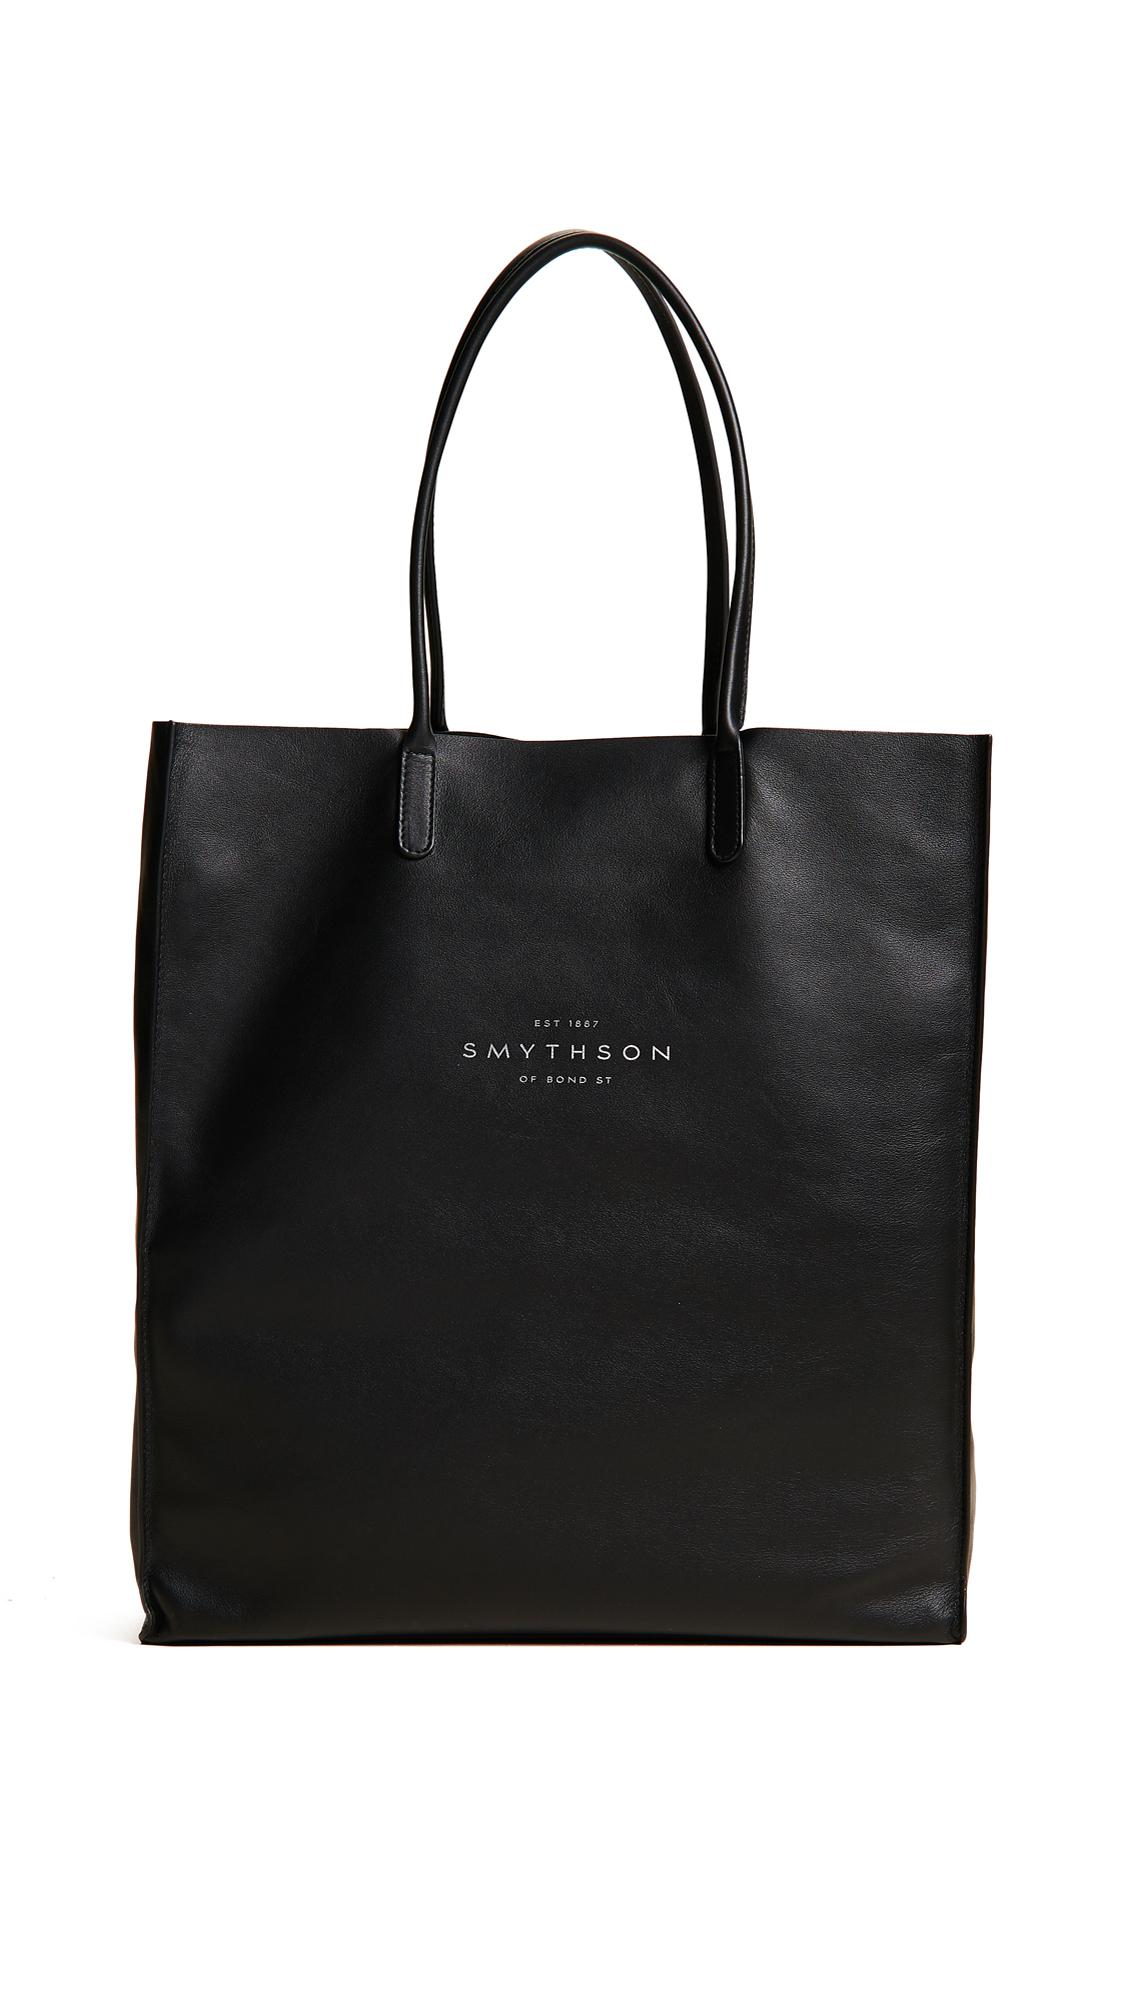 Smythson Leather Kingly North South Tote in Black